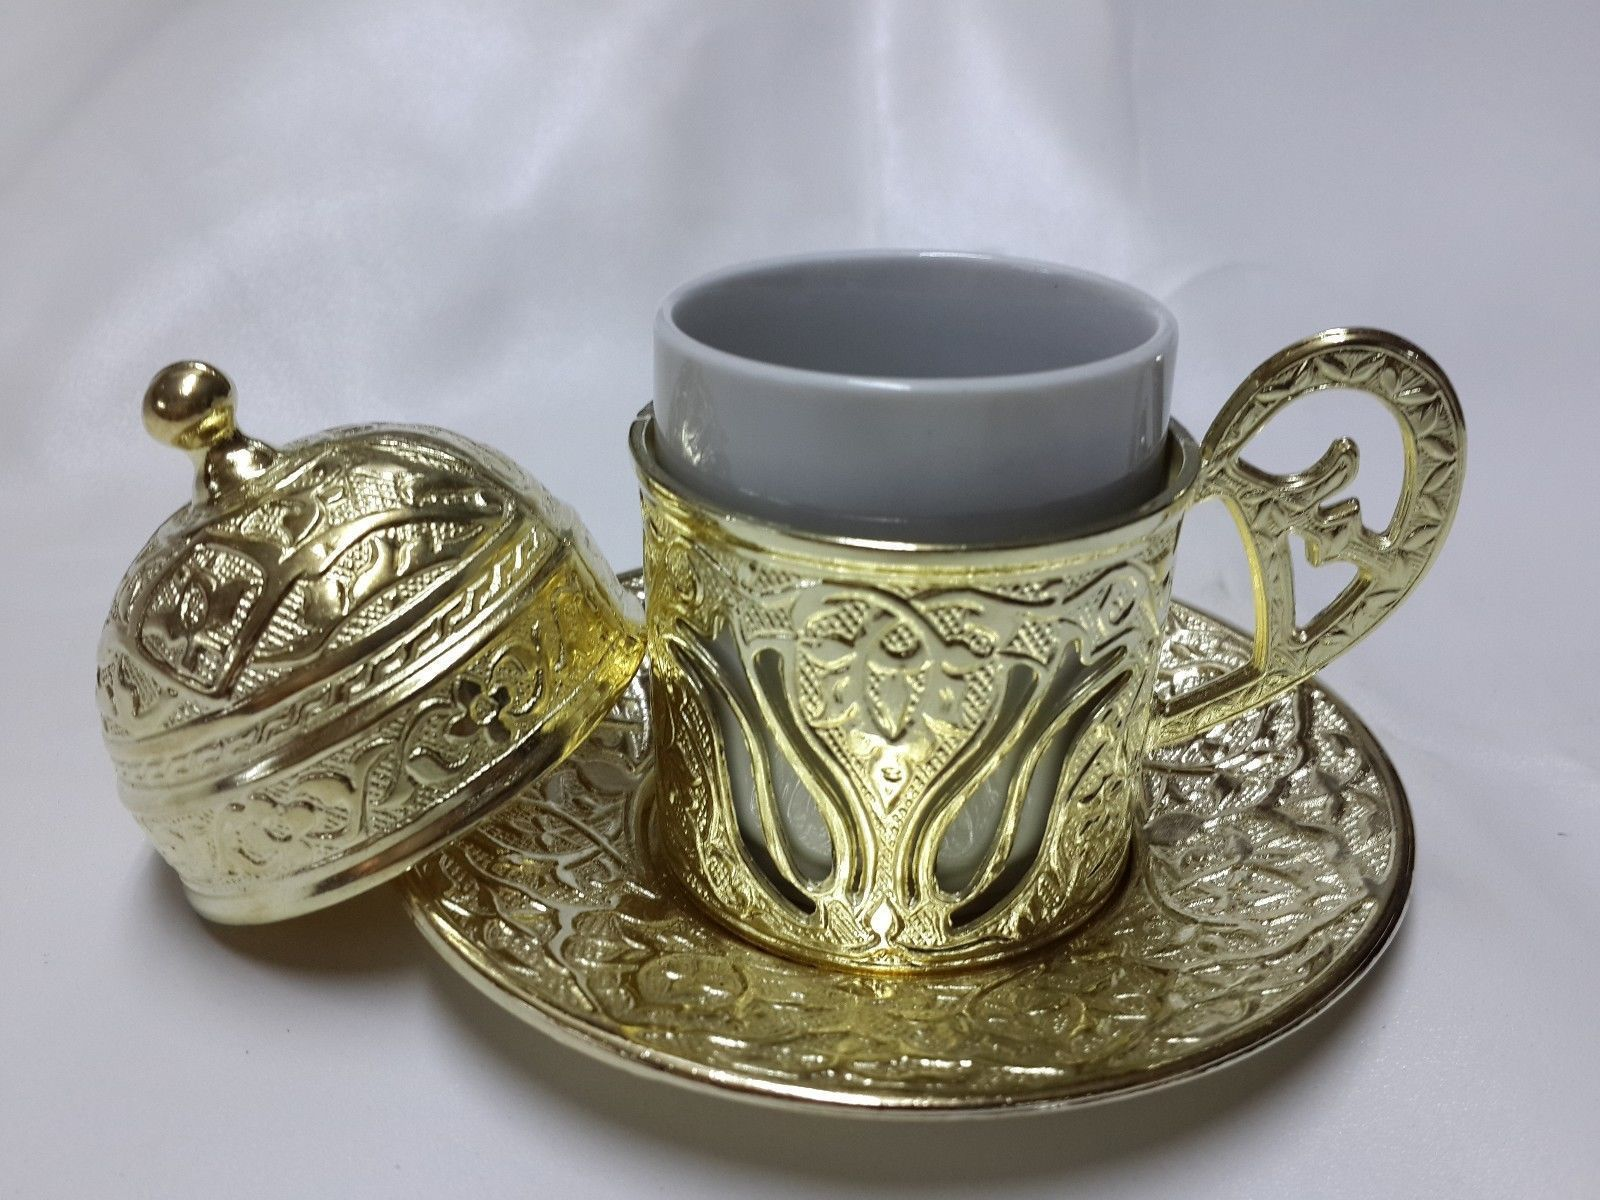 TURKISH COFFEE SERVING CUP FOR ONE OTTOMAN STYLE